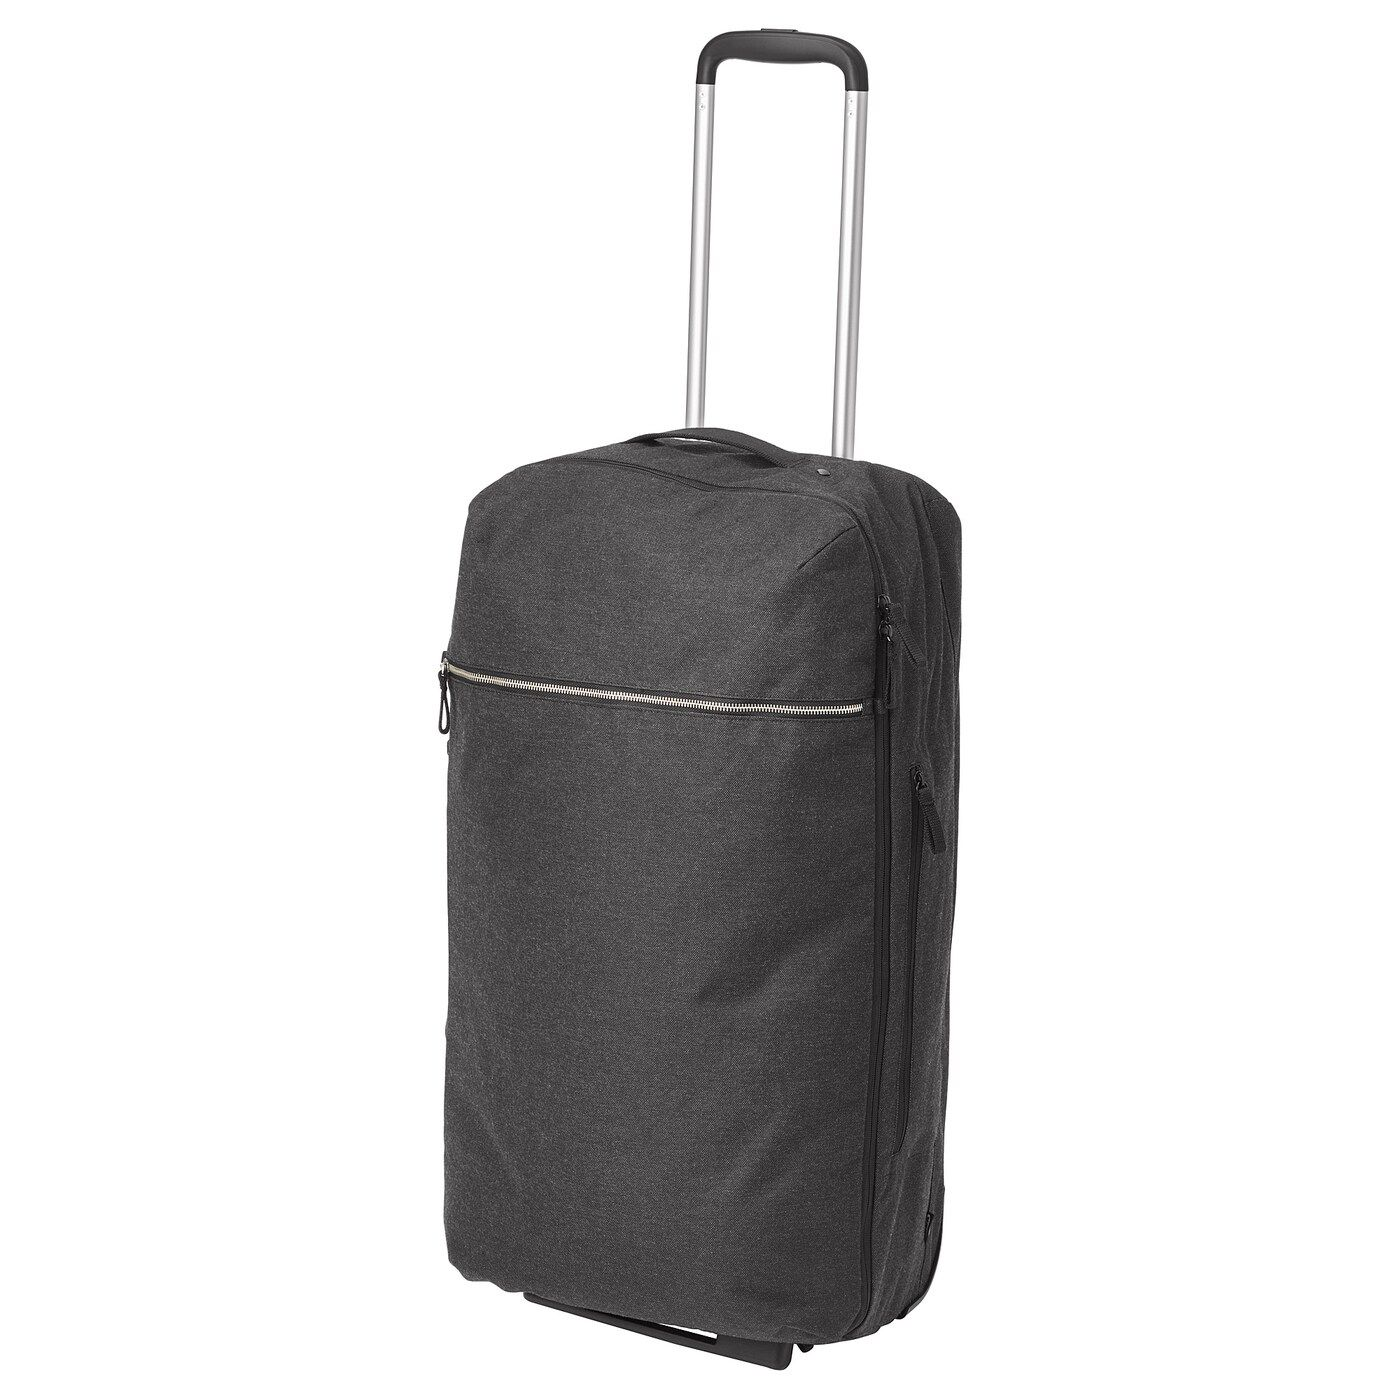 Forenkla Sac De Sport A Roulettes In 2020 Bags Travel Accessories Bag Accessories